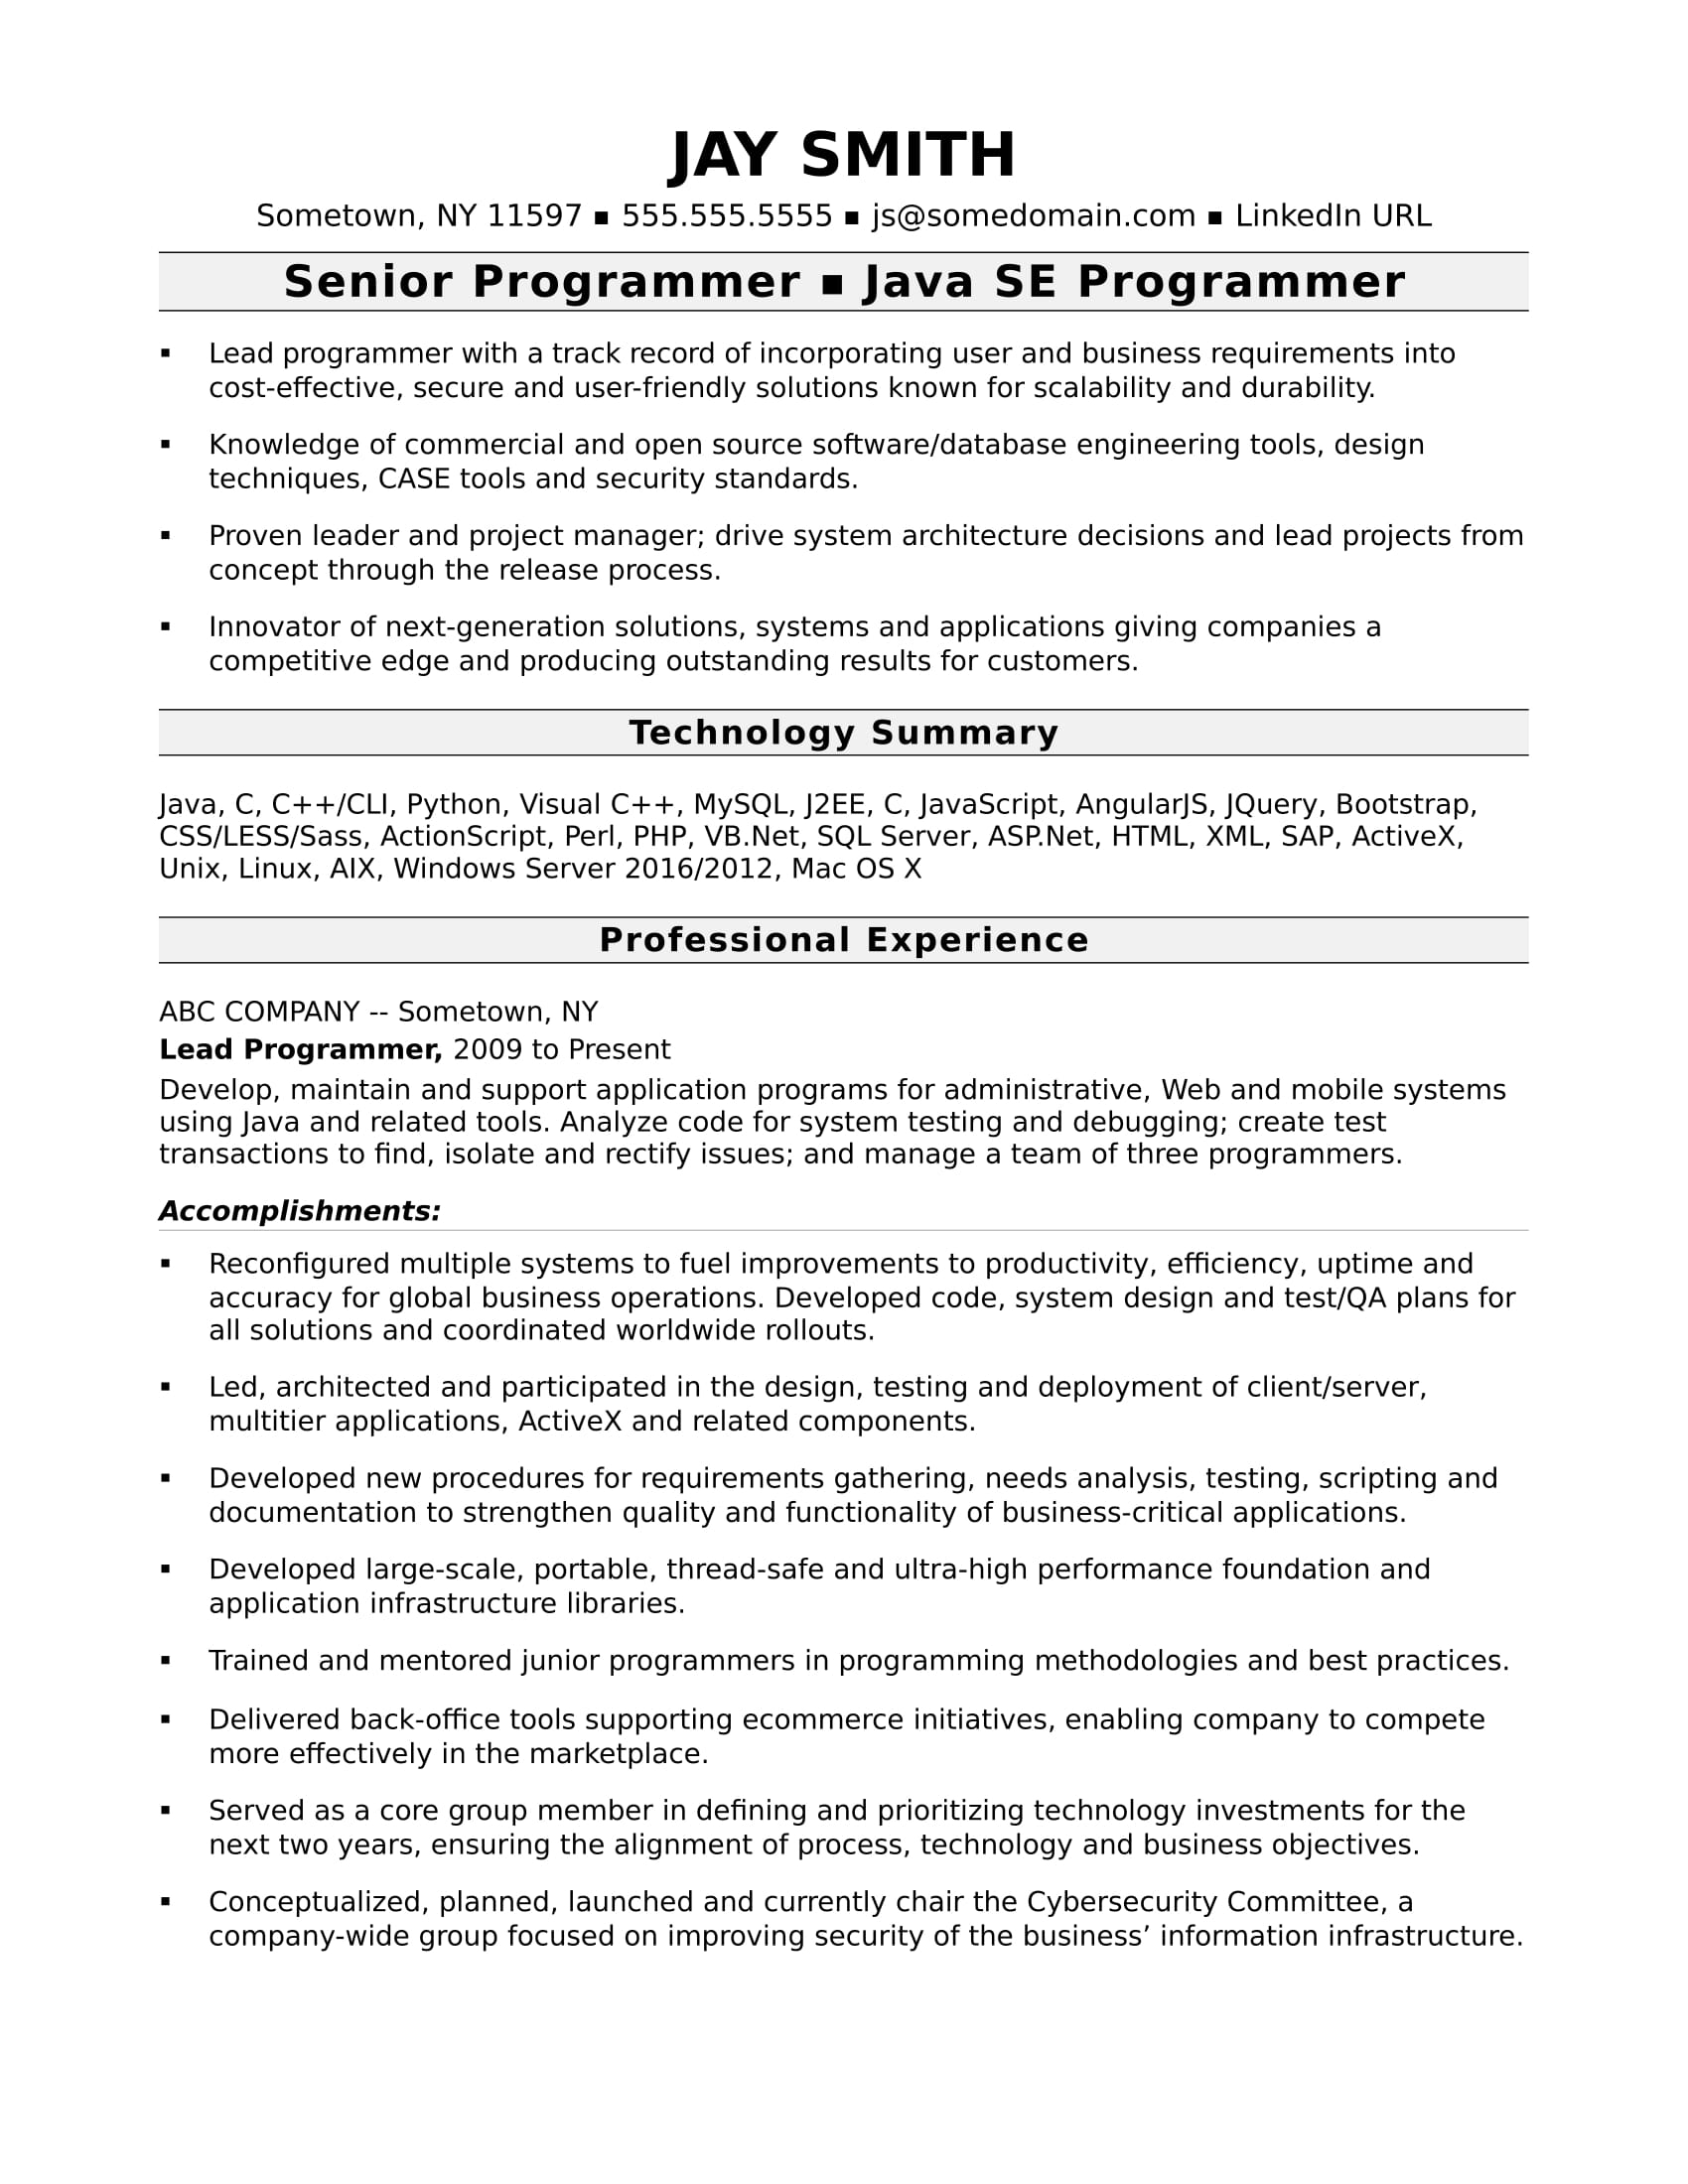 Sample resume for an experienced computer programmer monster sample resume for an experienced computer programmer thecheapjerseys